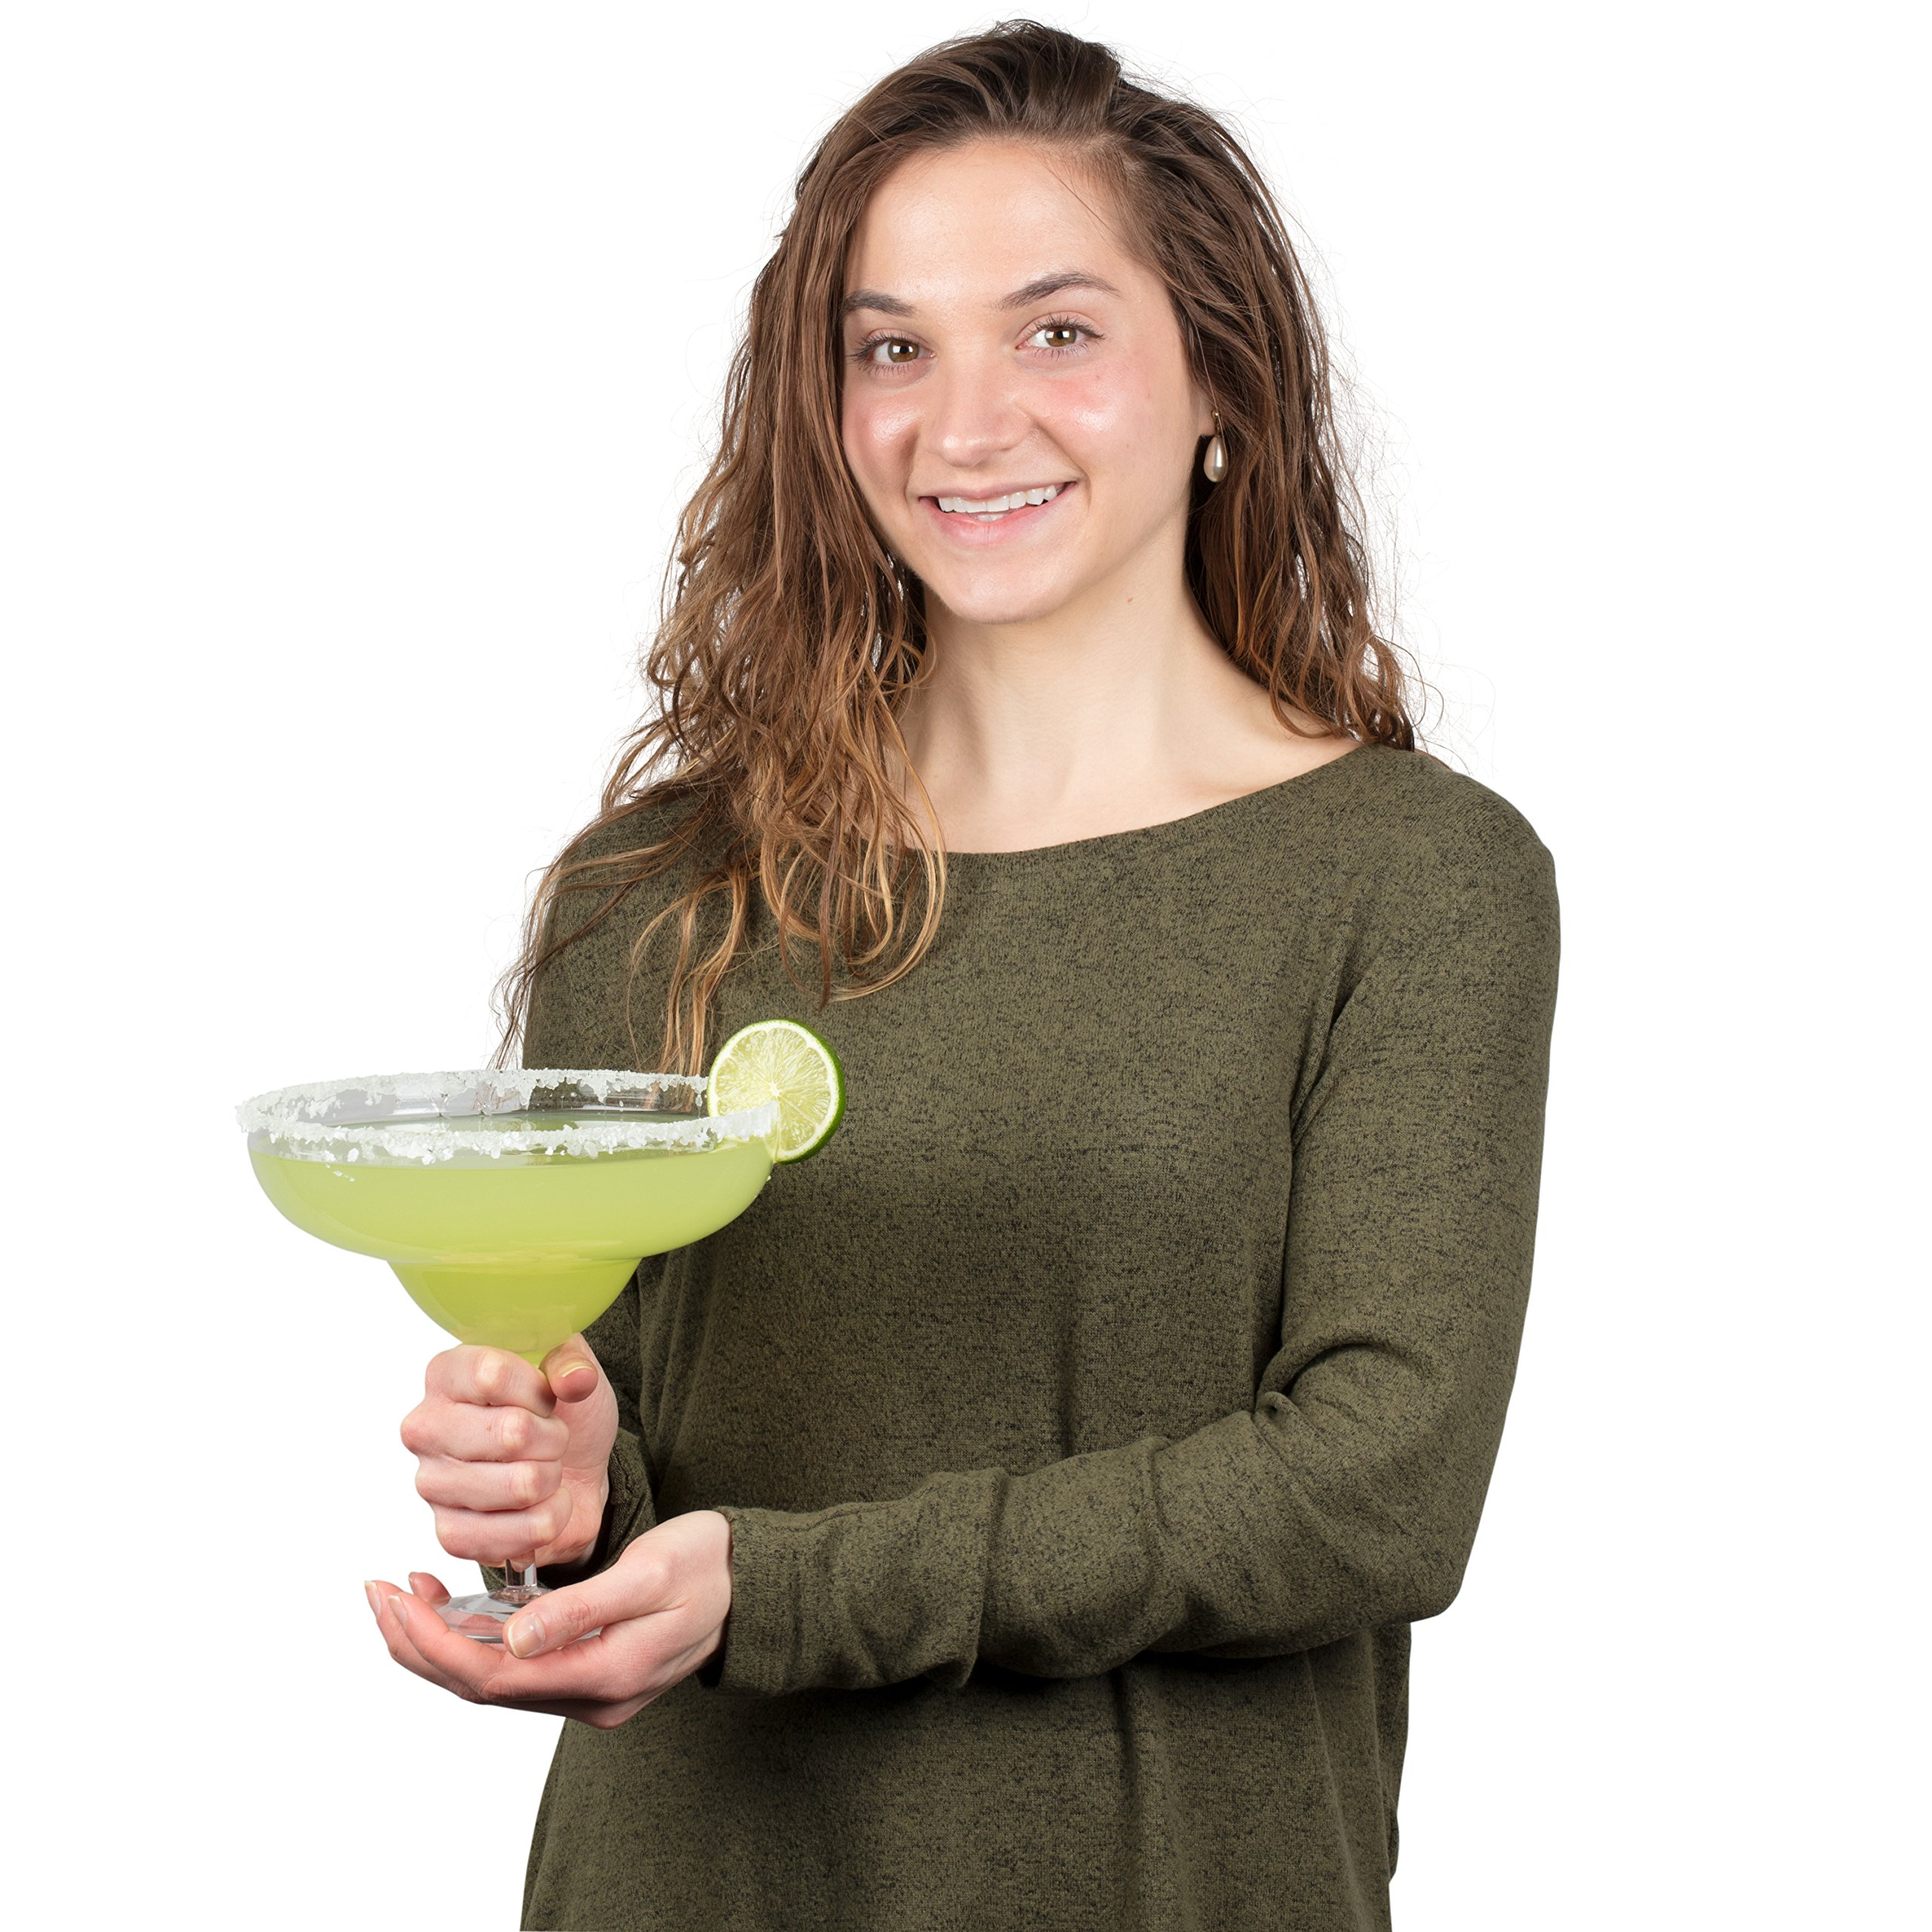 Extra Large Giant Cinco De Mayo Margarita Glass - 34oz - Fits about 3 typical margaritas! by Royal Lush (Image #5)